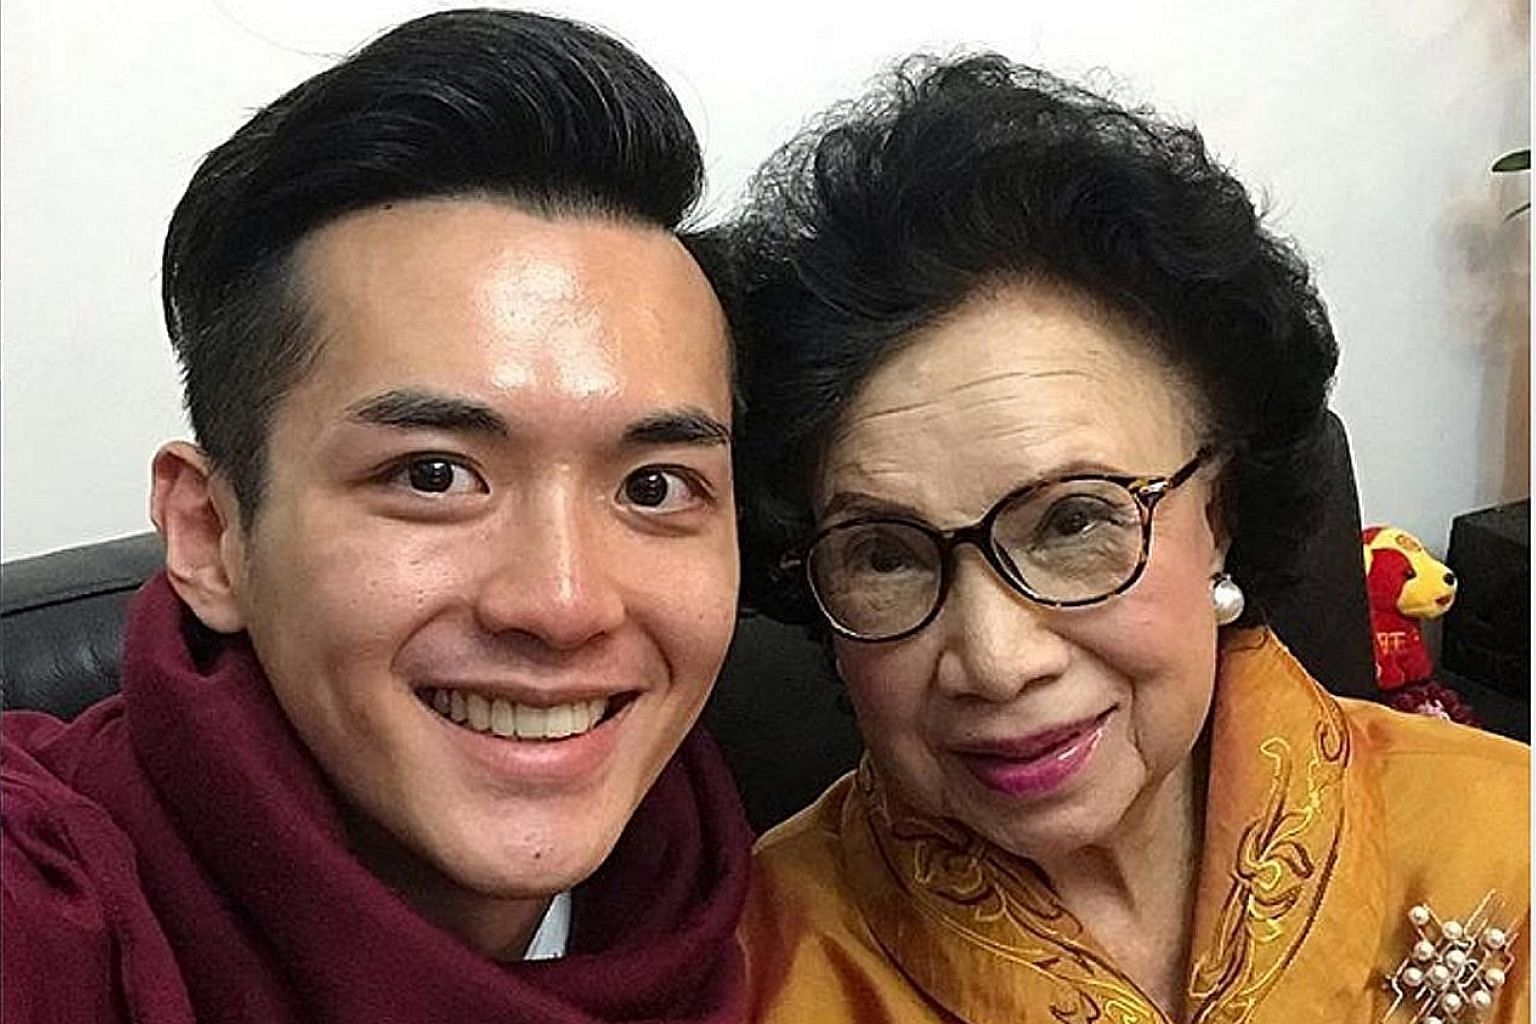 Hong Kong veteran actress Teresa Ha (left) died on Aug 5 at age 81. Uploaded onto Instagram on Feb 5, this photo is of the late veteran actress Lily Leung with her grandson, Hong Kong actor Nicholas Yuen.